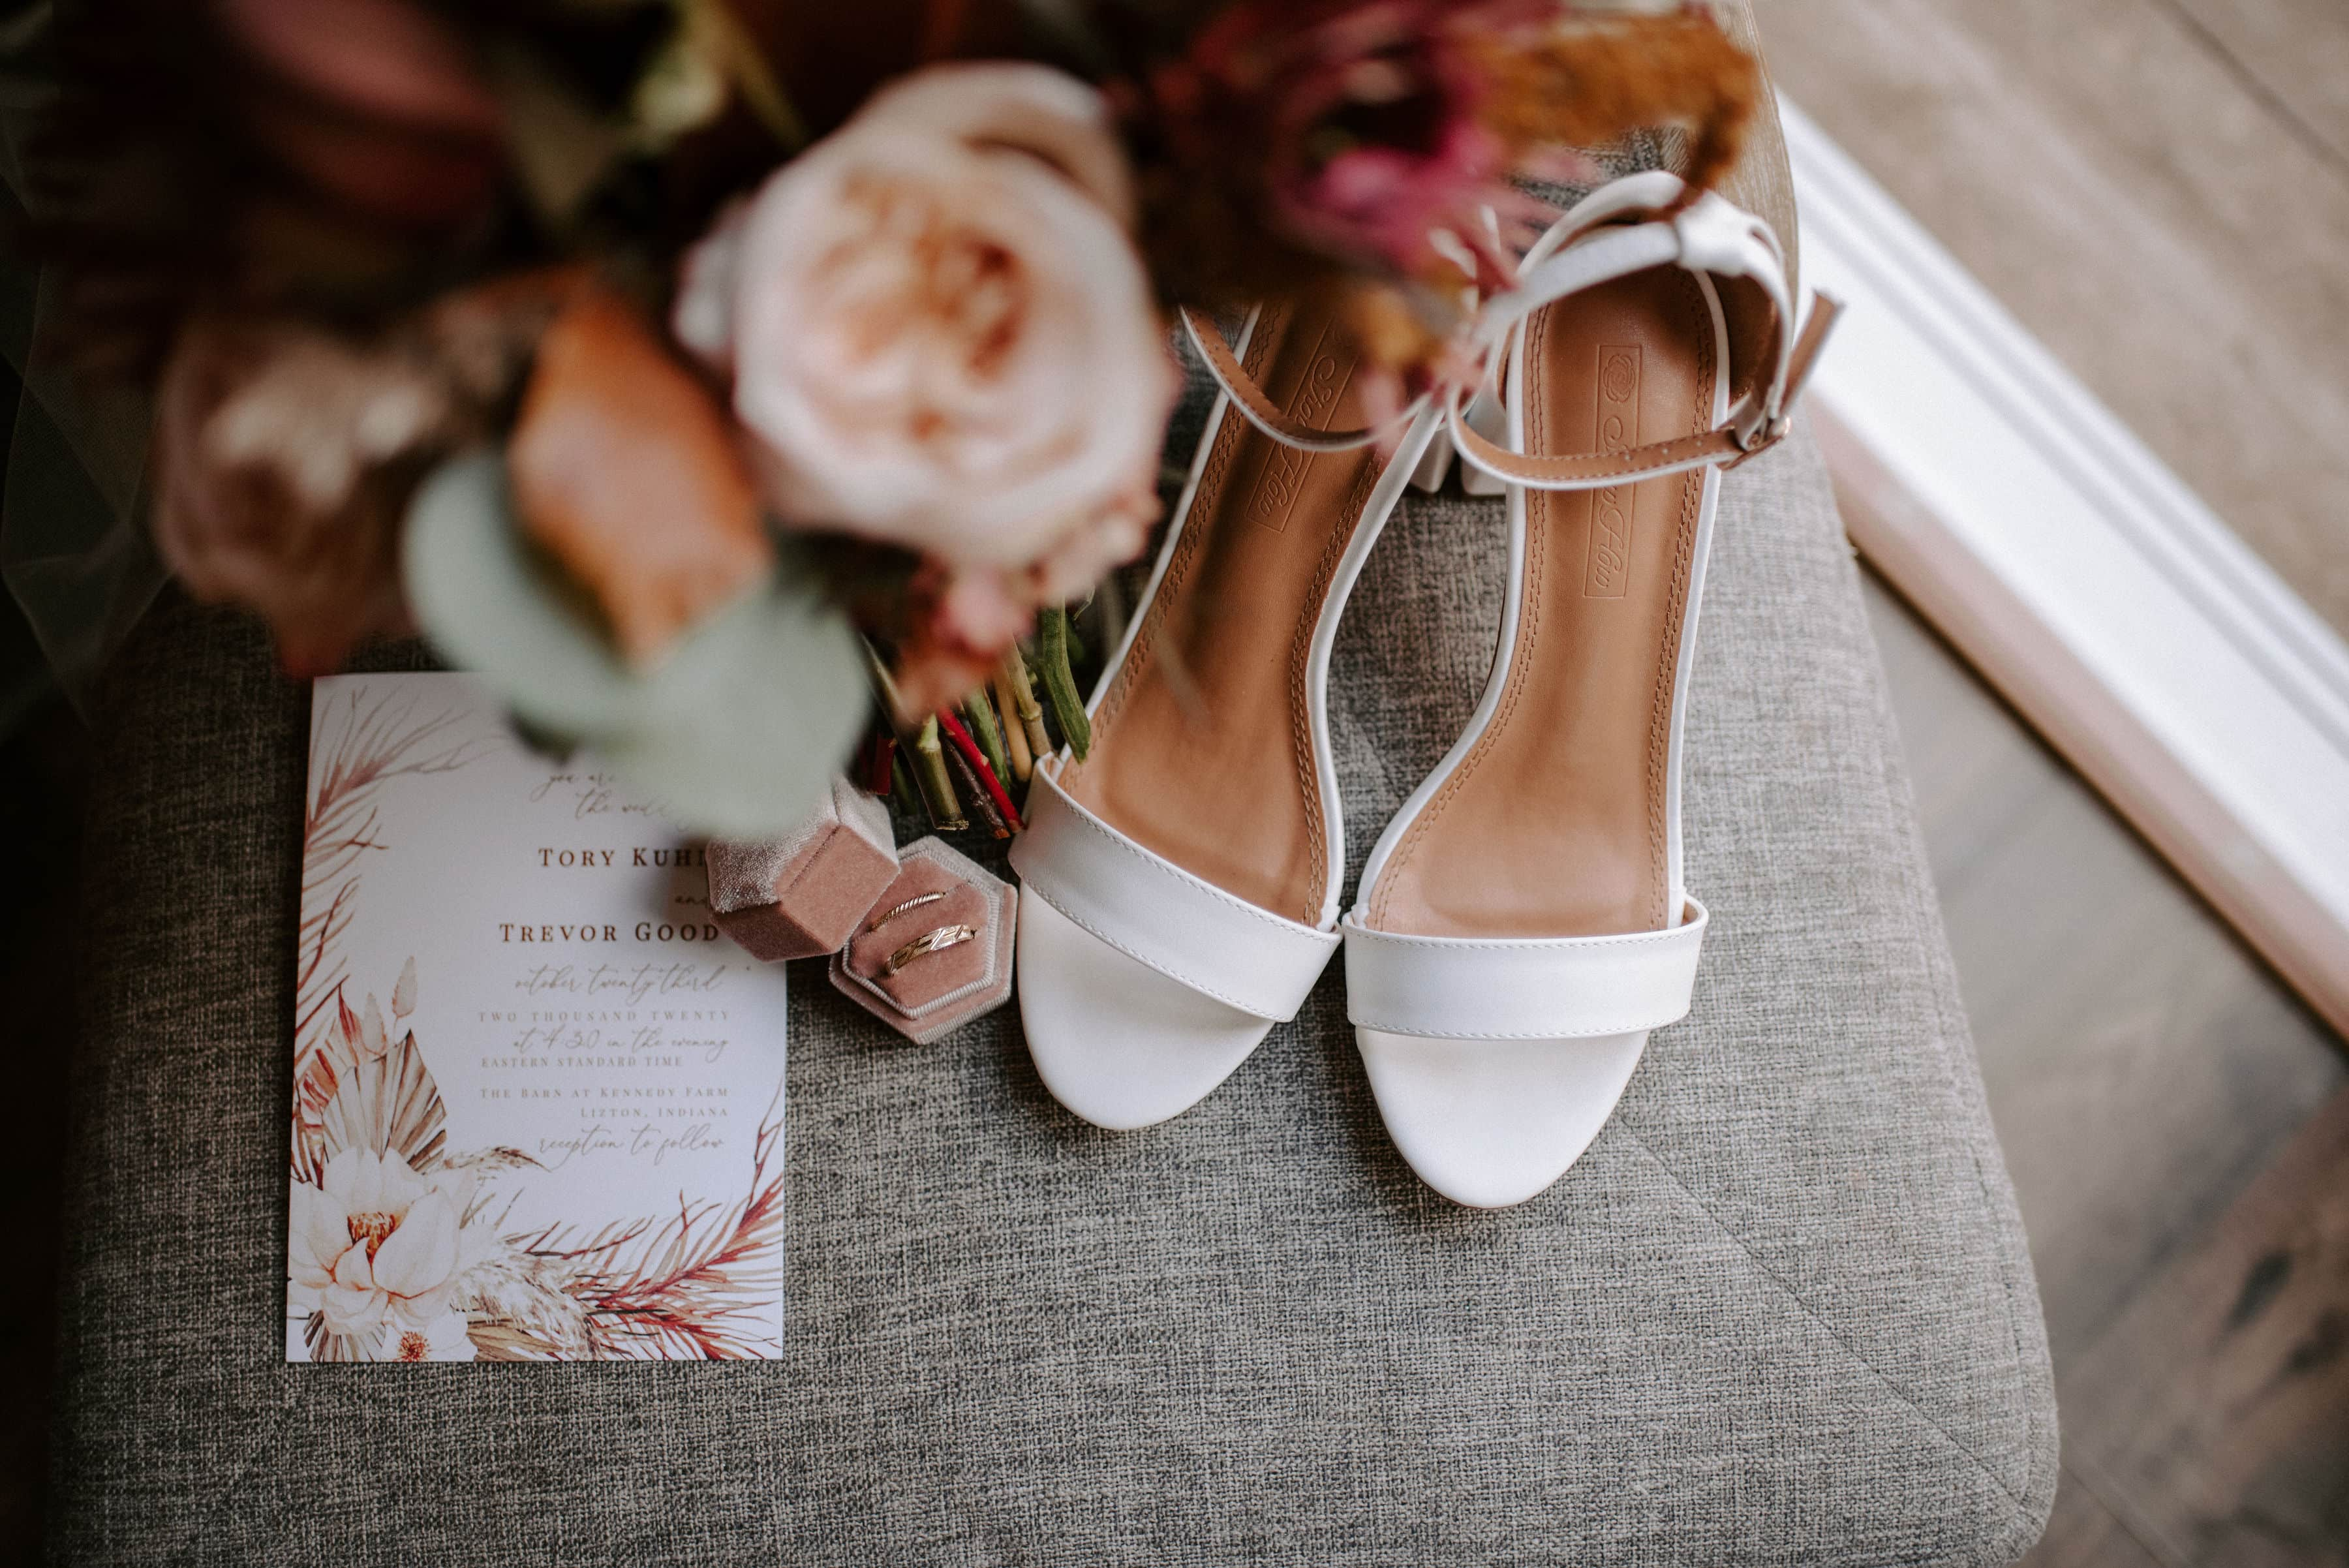 A Bride's Experience in the Midst of a Covid World